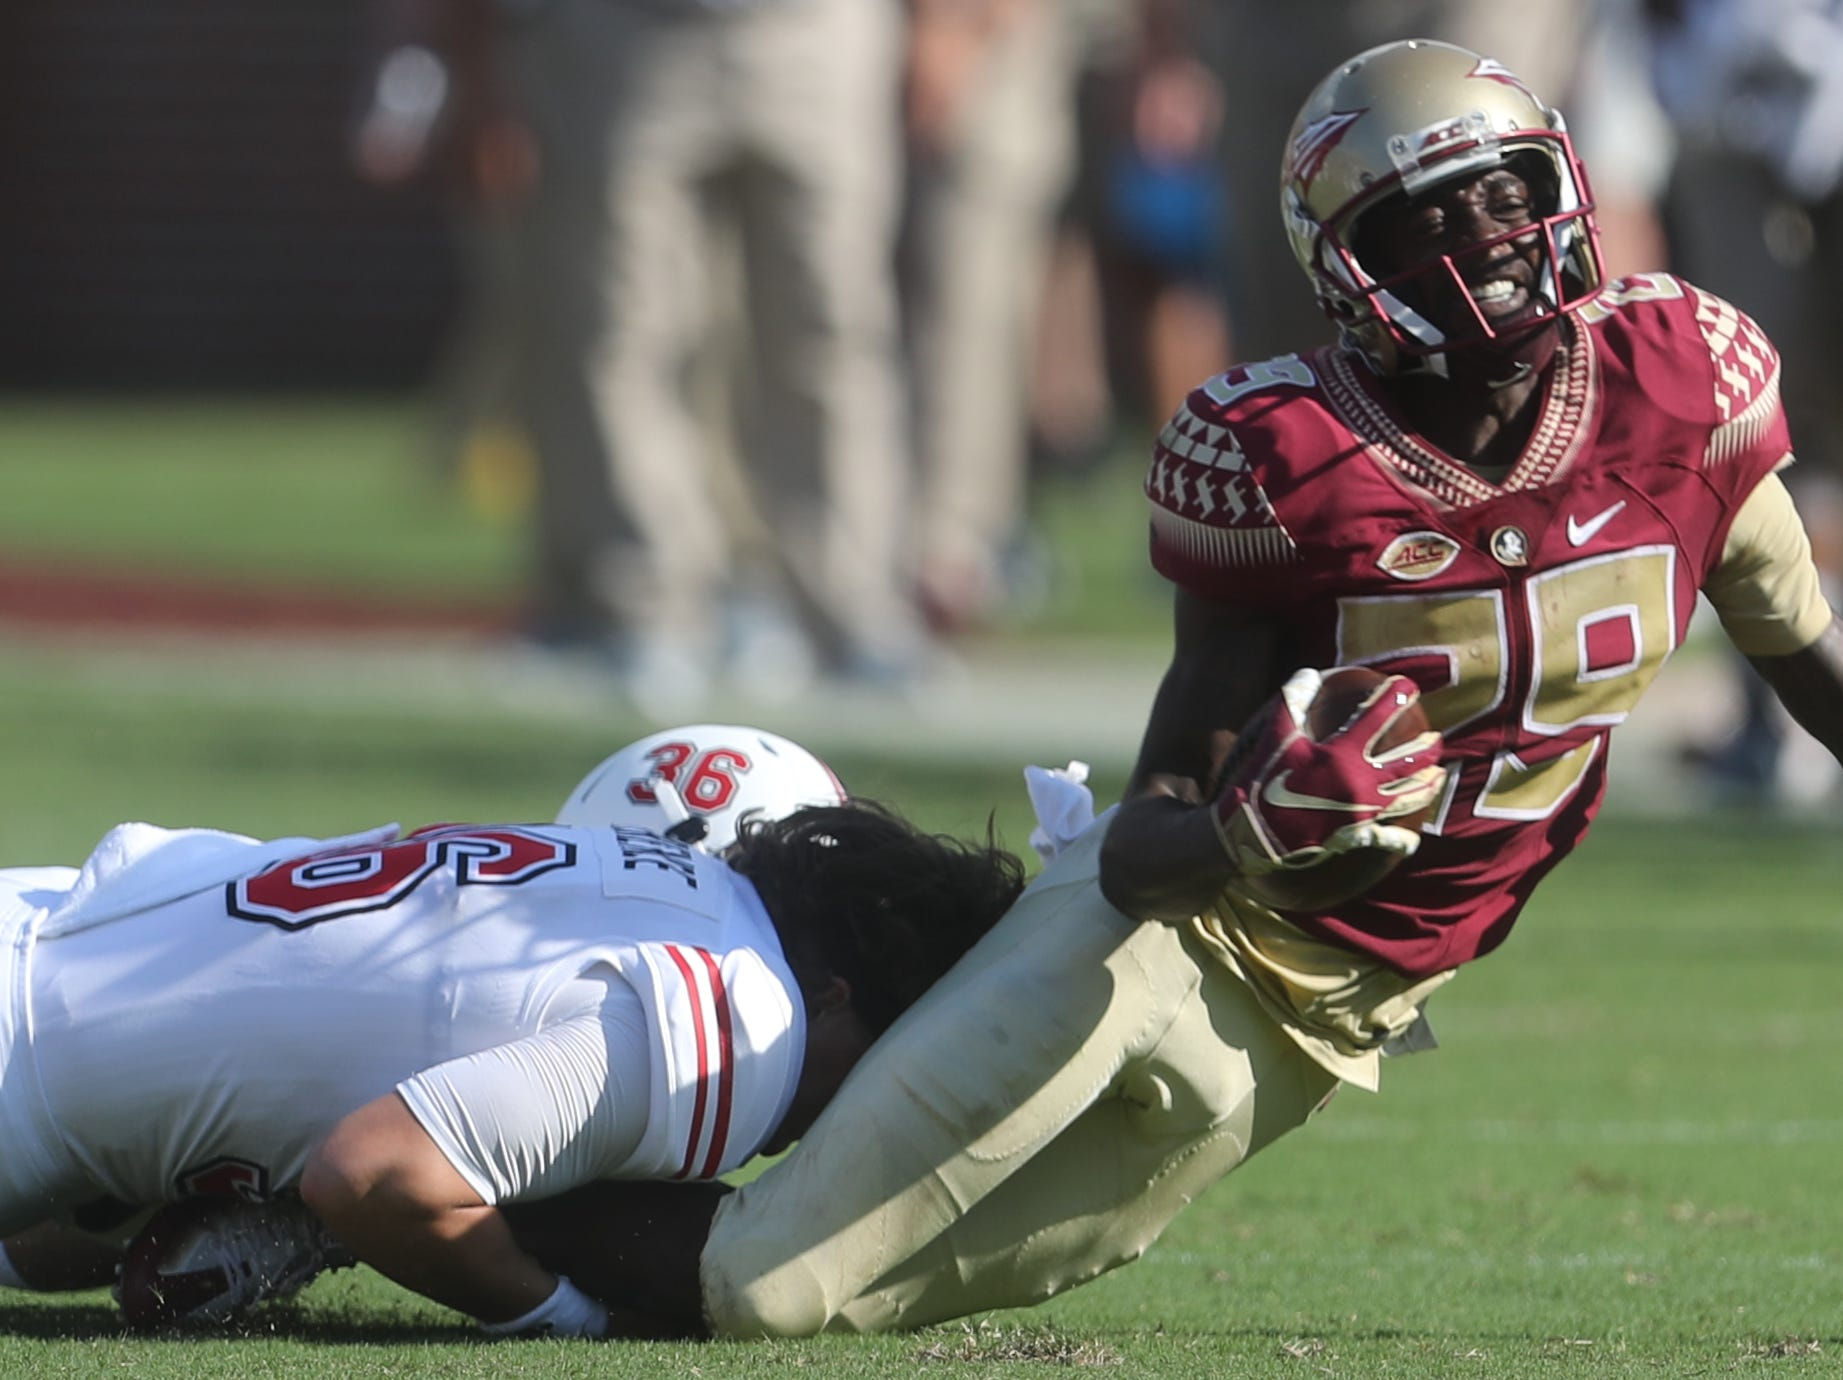 As his helmet comes off, Northern Illinois Huskies punter Matt Ference (36) tackles Florida State Seminoles wide receiver D.J. Matthews (29) during a game between the Florida State University Seminoles and the Northern Illinois University Huskies at Doak S. Campbell Stadium in Tallahassee, Fla. Saturday, September 22, 2018.